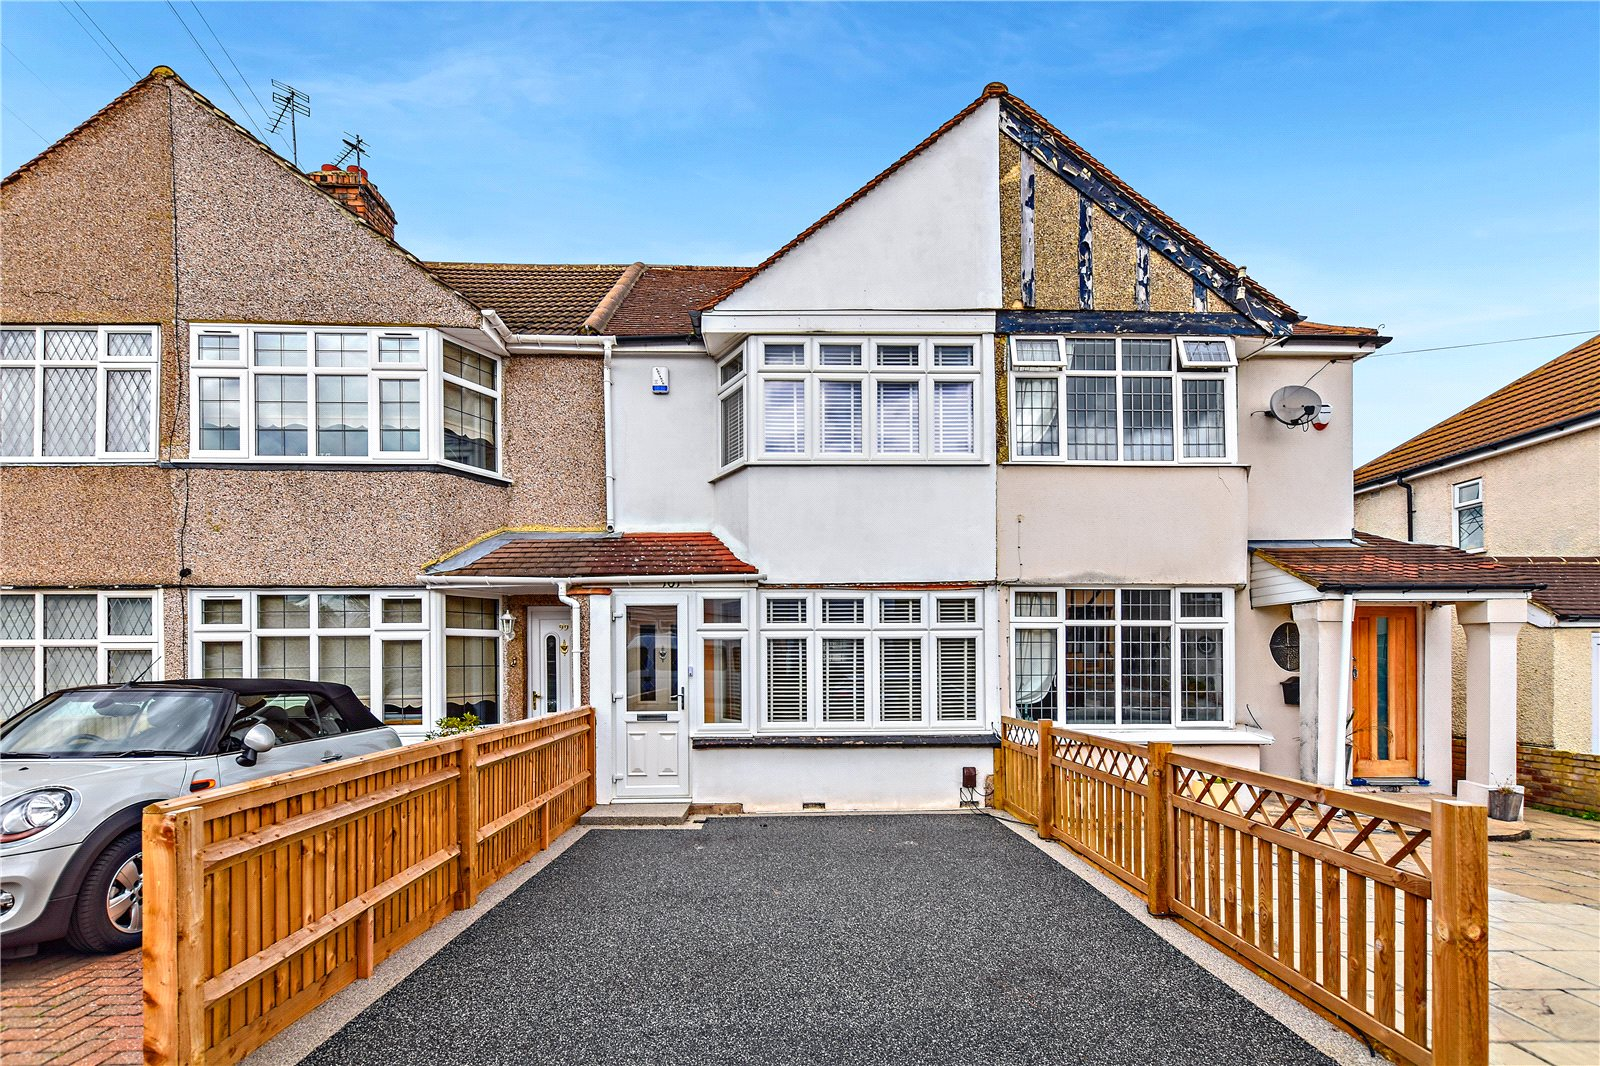 Howard Avenue, Bexley, Kent, DA5